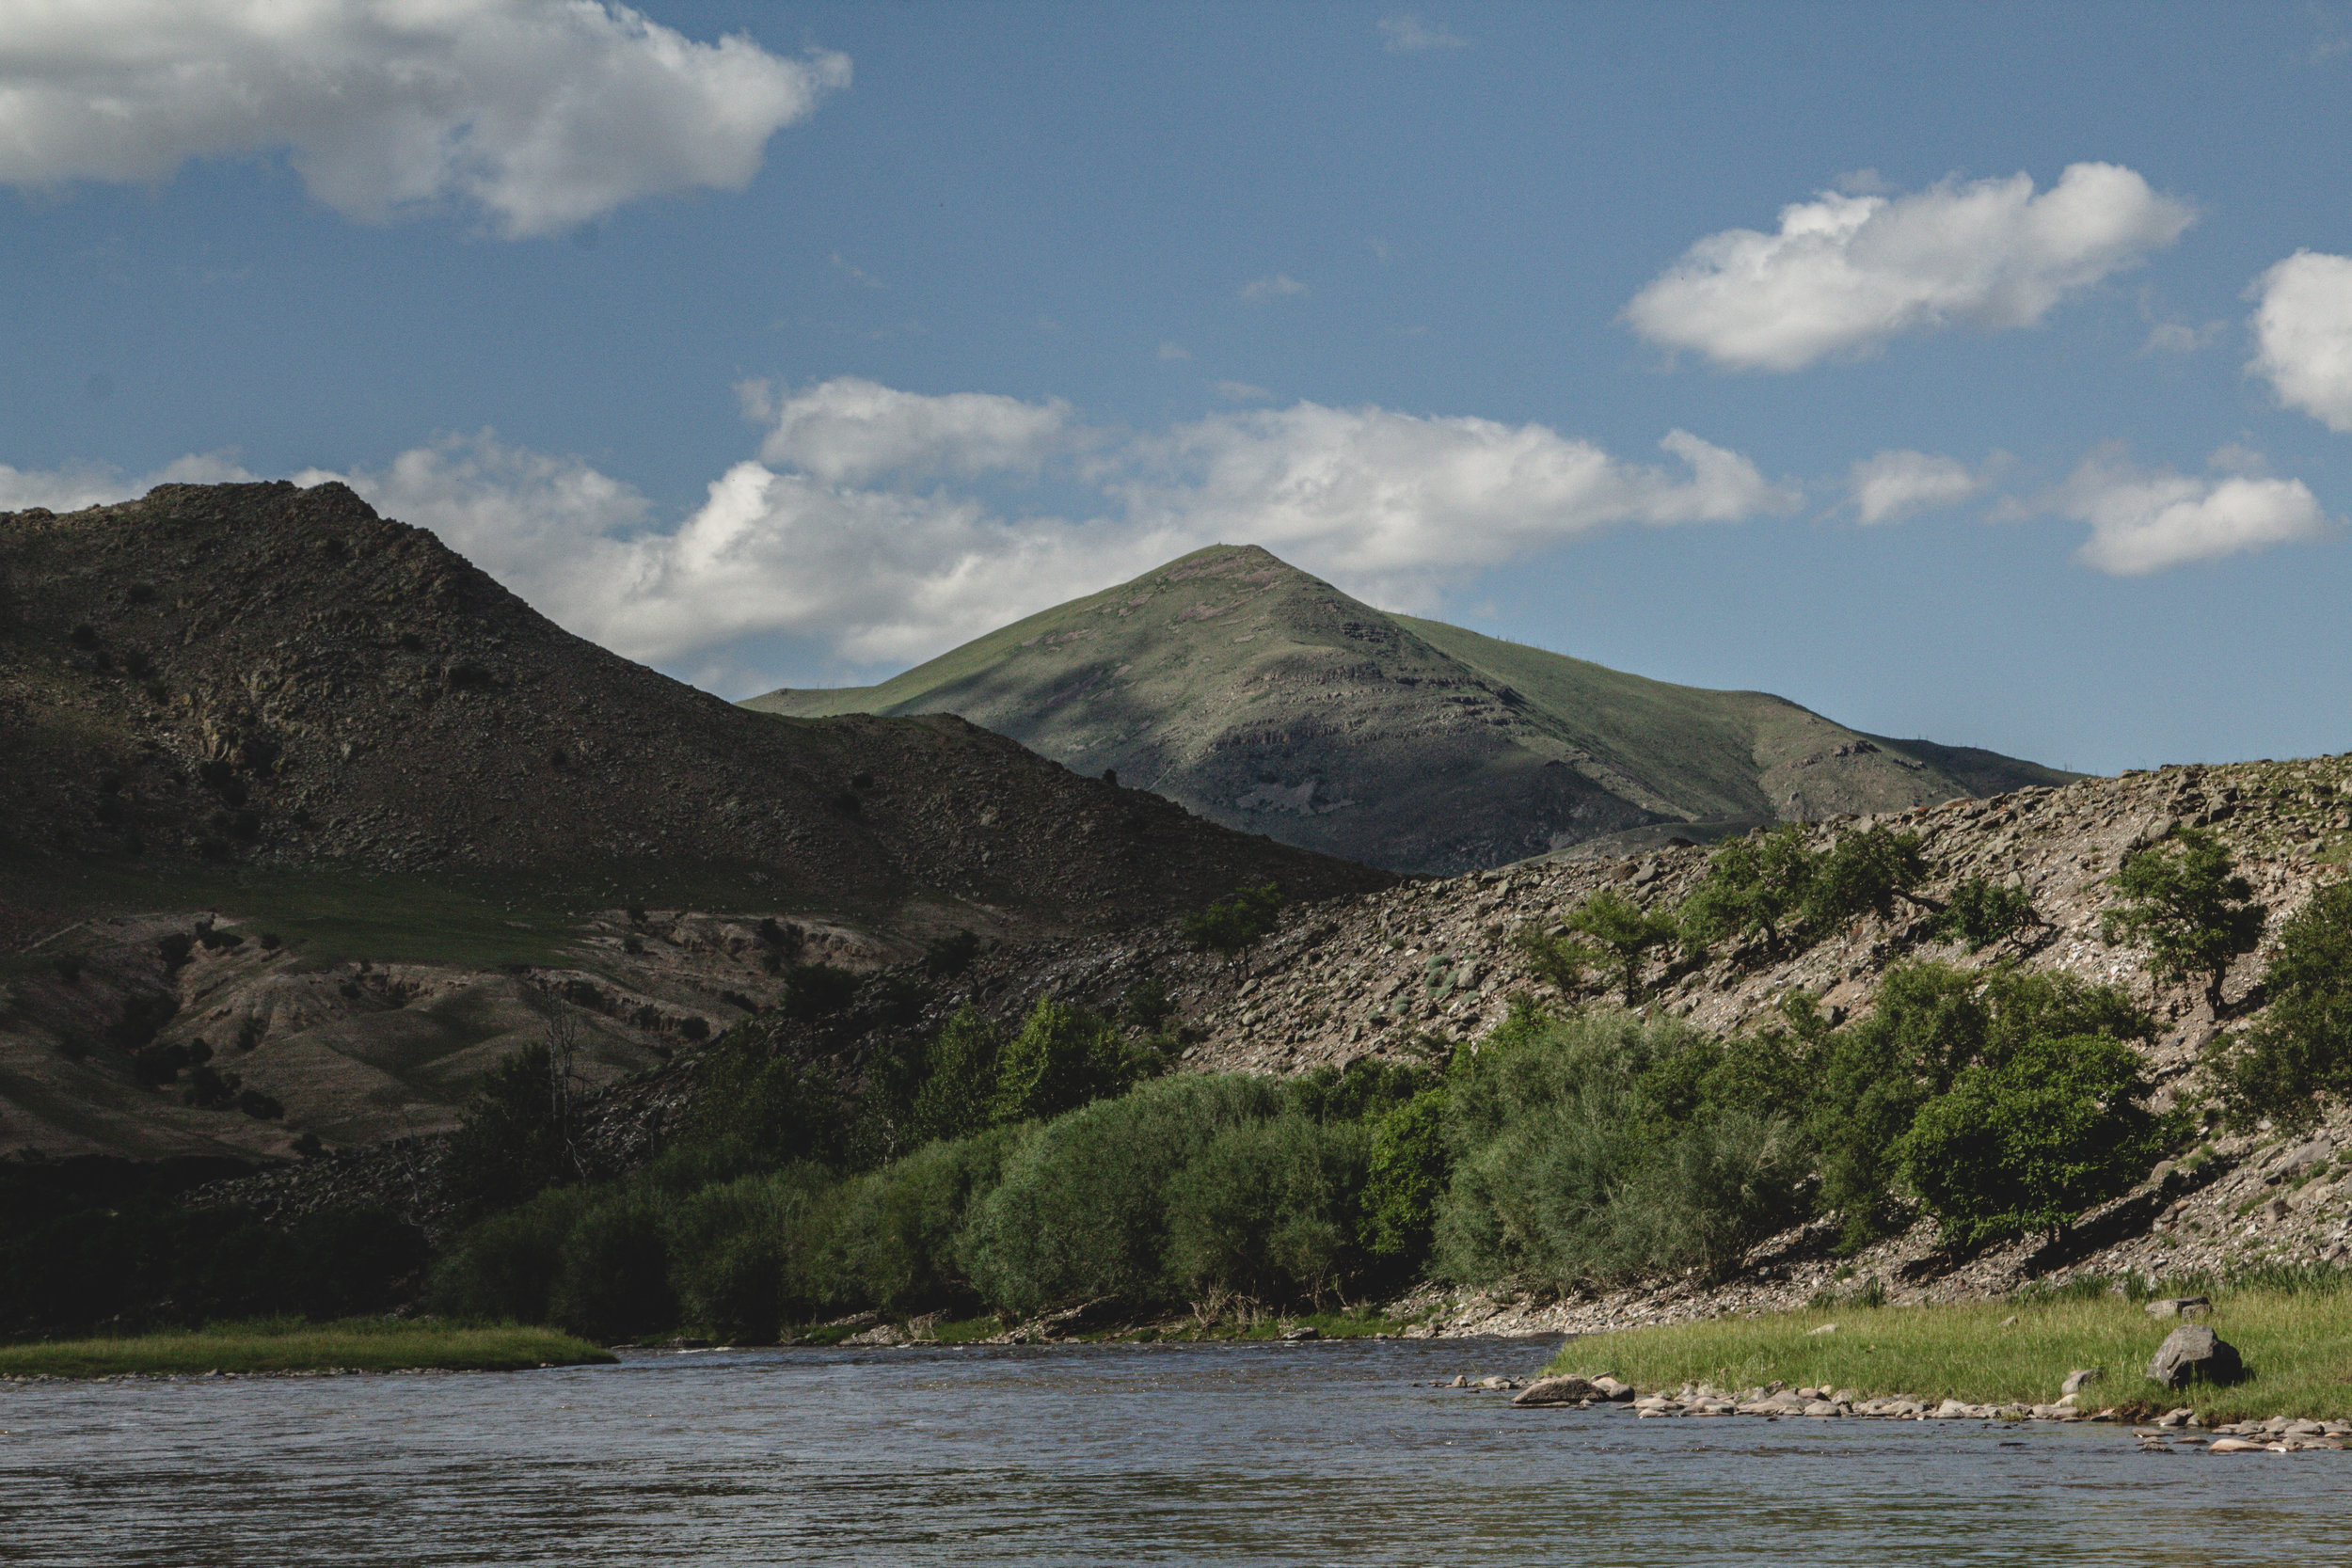 I could only imagine the Mongolian landscapes that waited for us while we sat around hoping that our flight would leave soon. The thought of the mountains and the river was the only thing that kept us going that night.